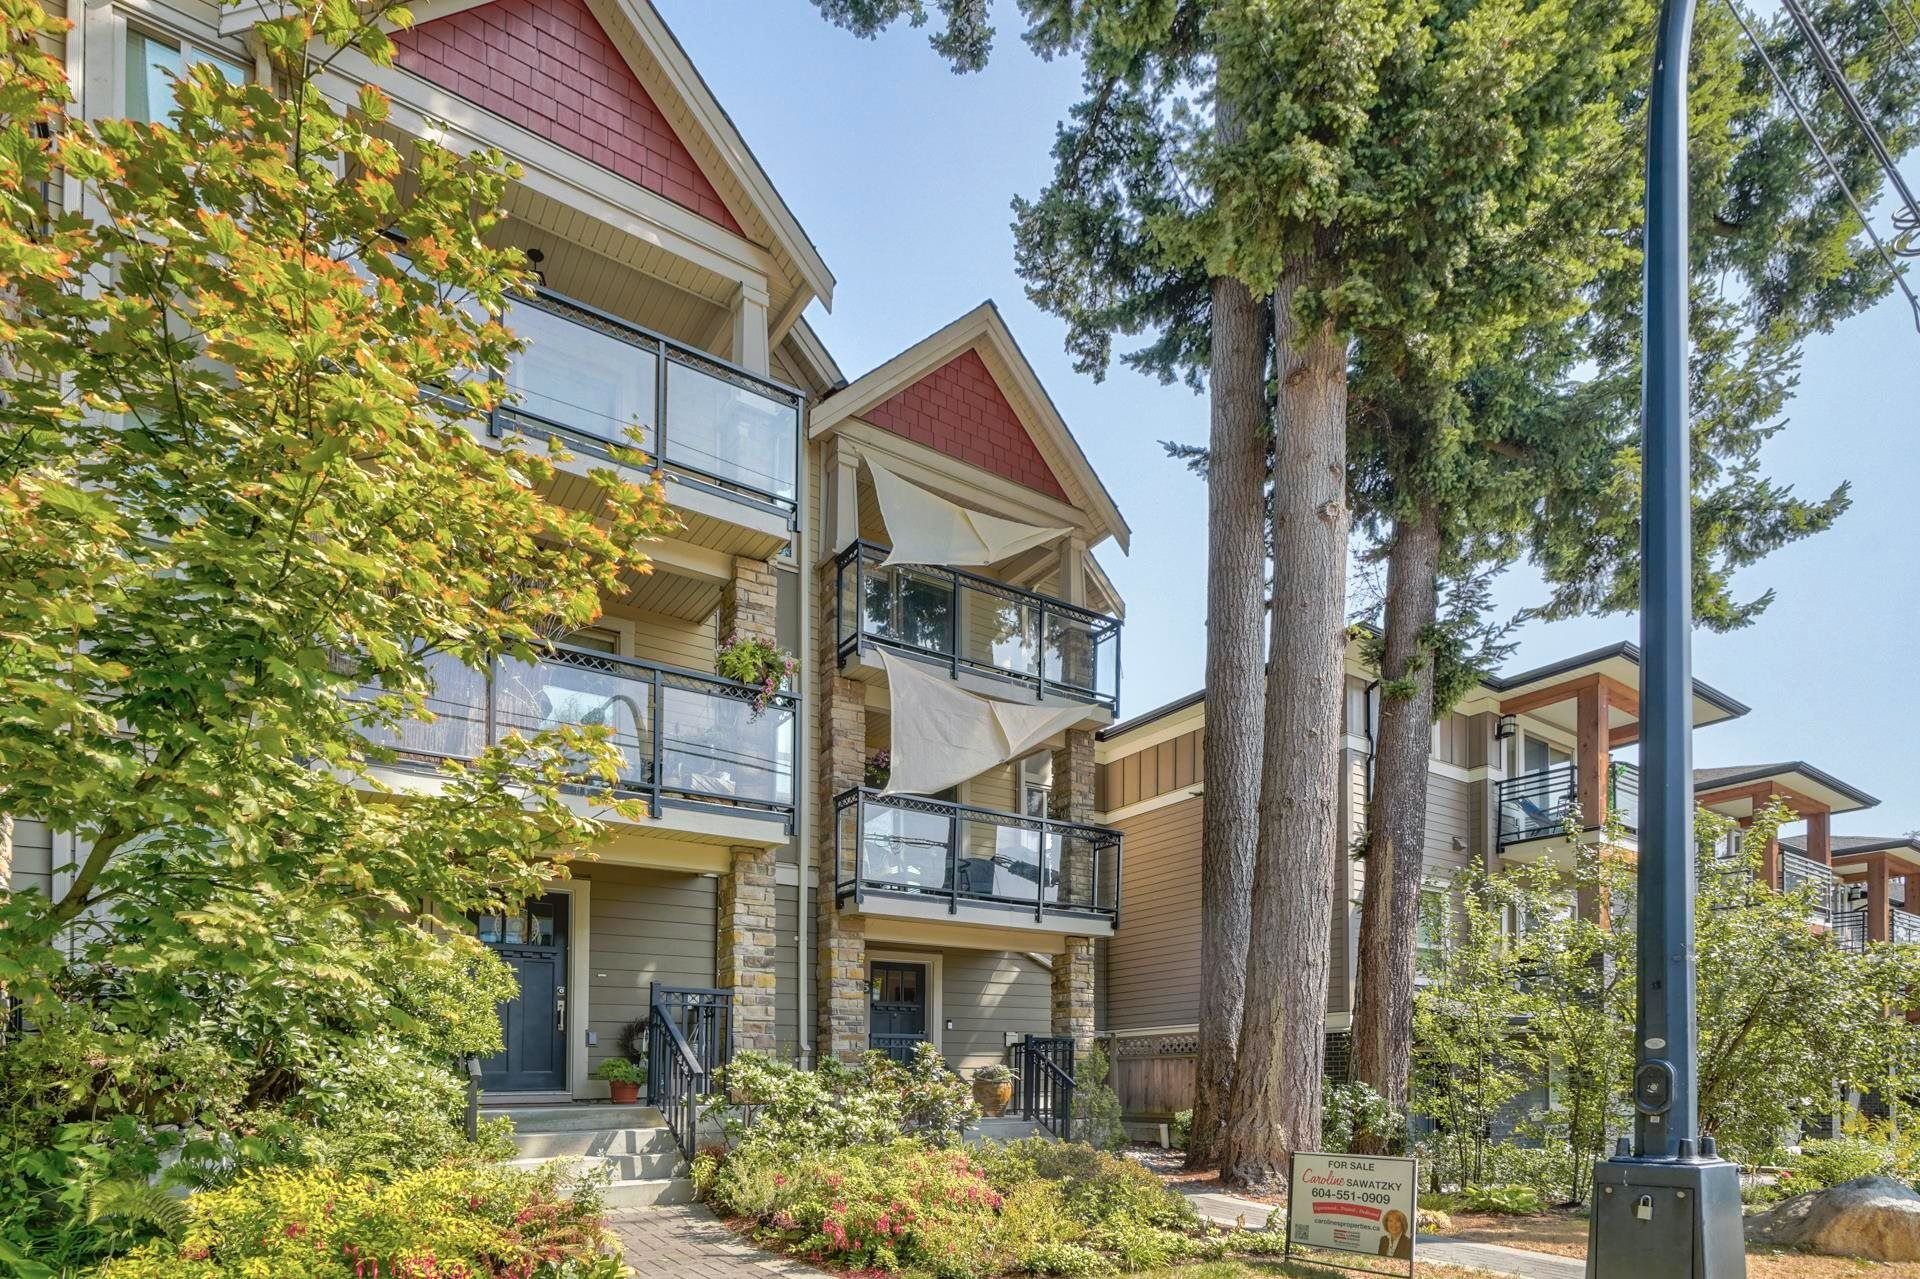 """Main Photo: 3 1434 EVERALL Street: White Rock Townhouse for sale in """"EVERGREEN POINTE"""" (South Surrey White Rock)  : MLS®# R2609666"""